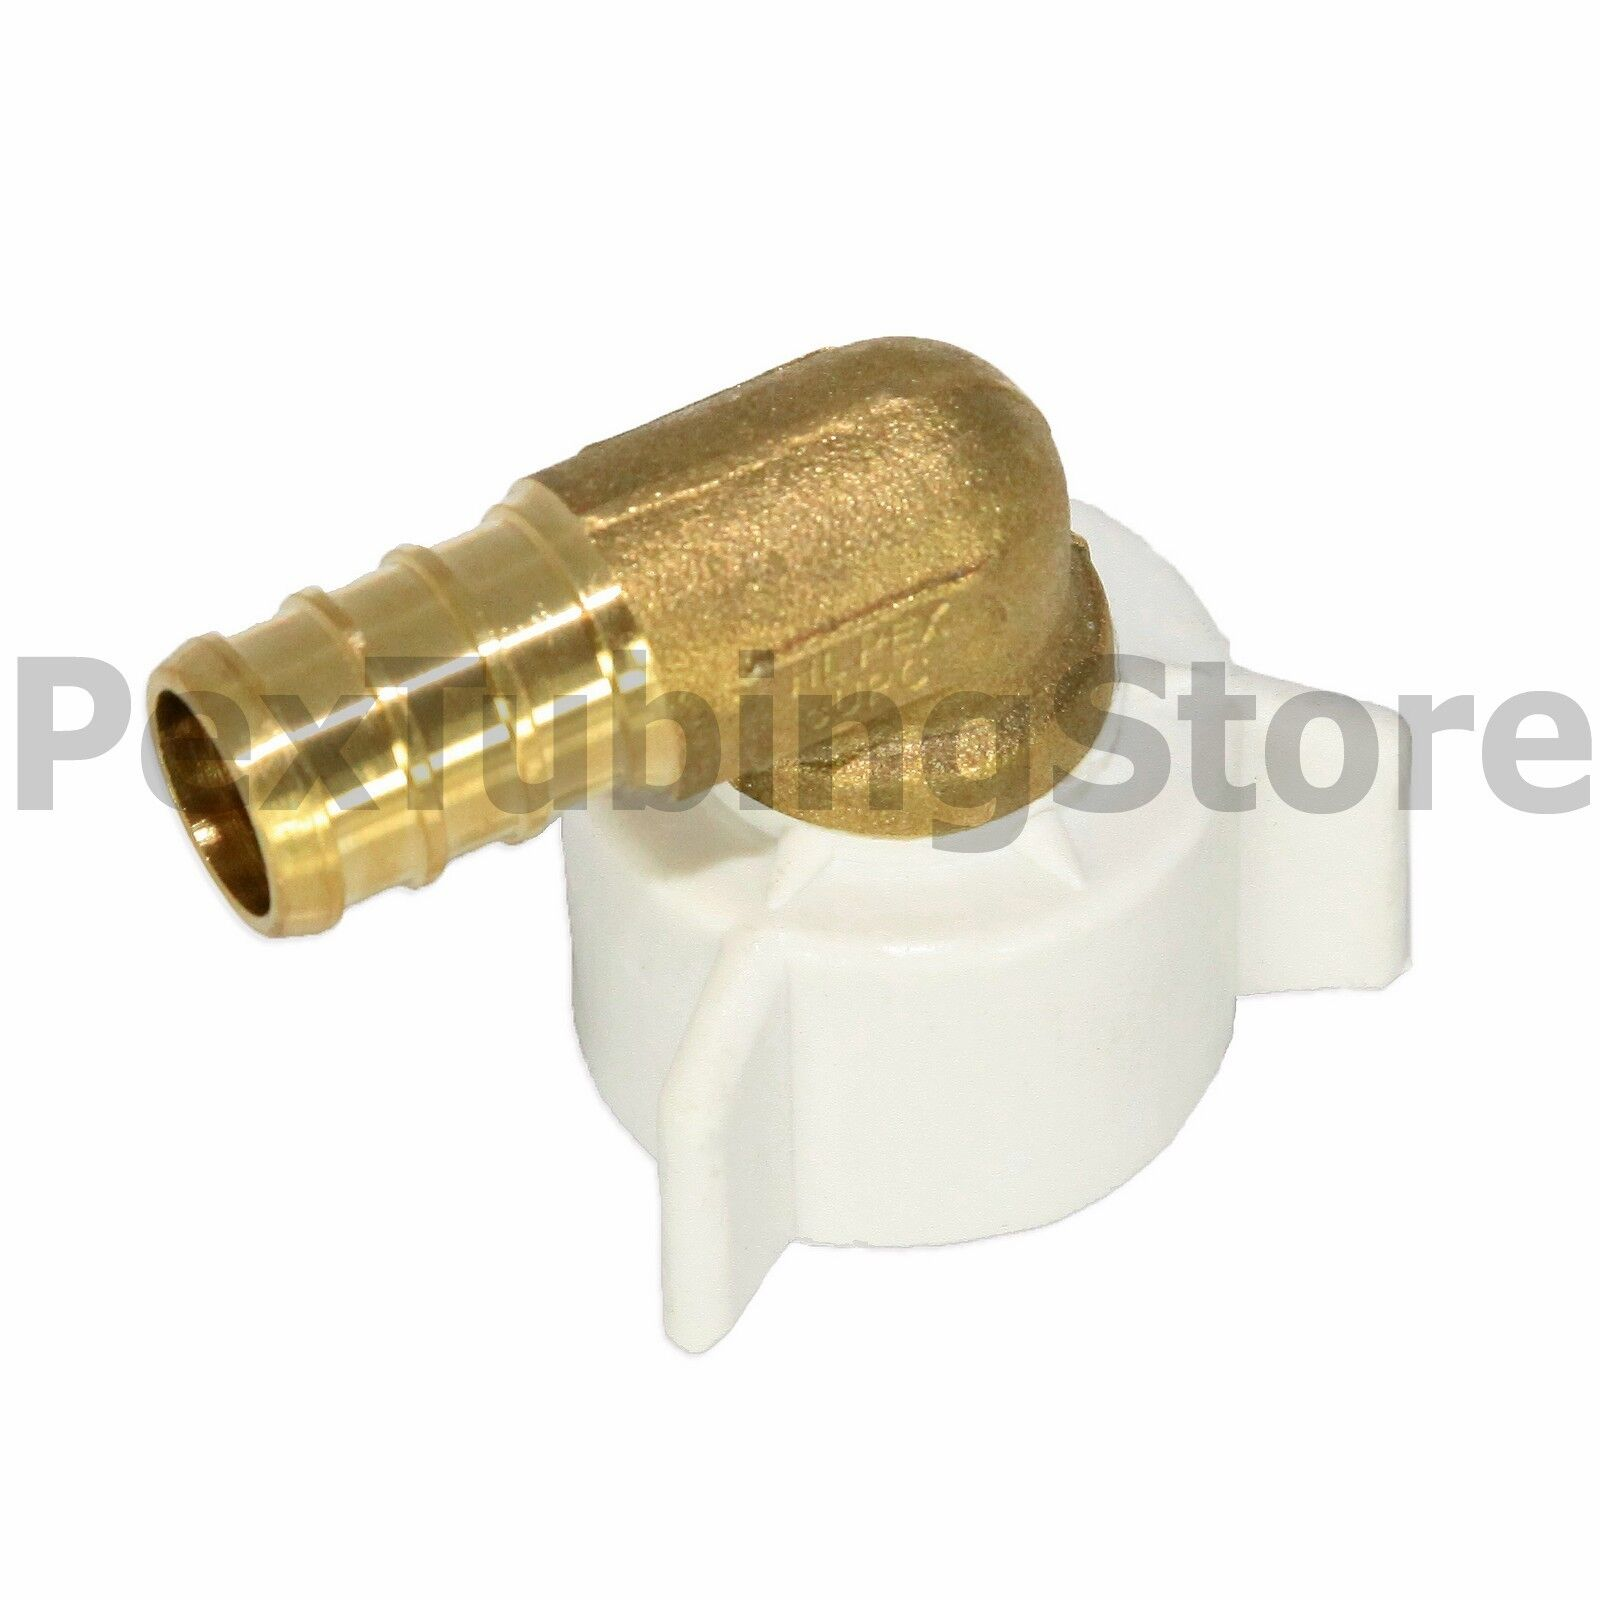 NSF PEX Fittings All Sizes ASTM Brass Crimp Elbows Tees Couplings Adapters